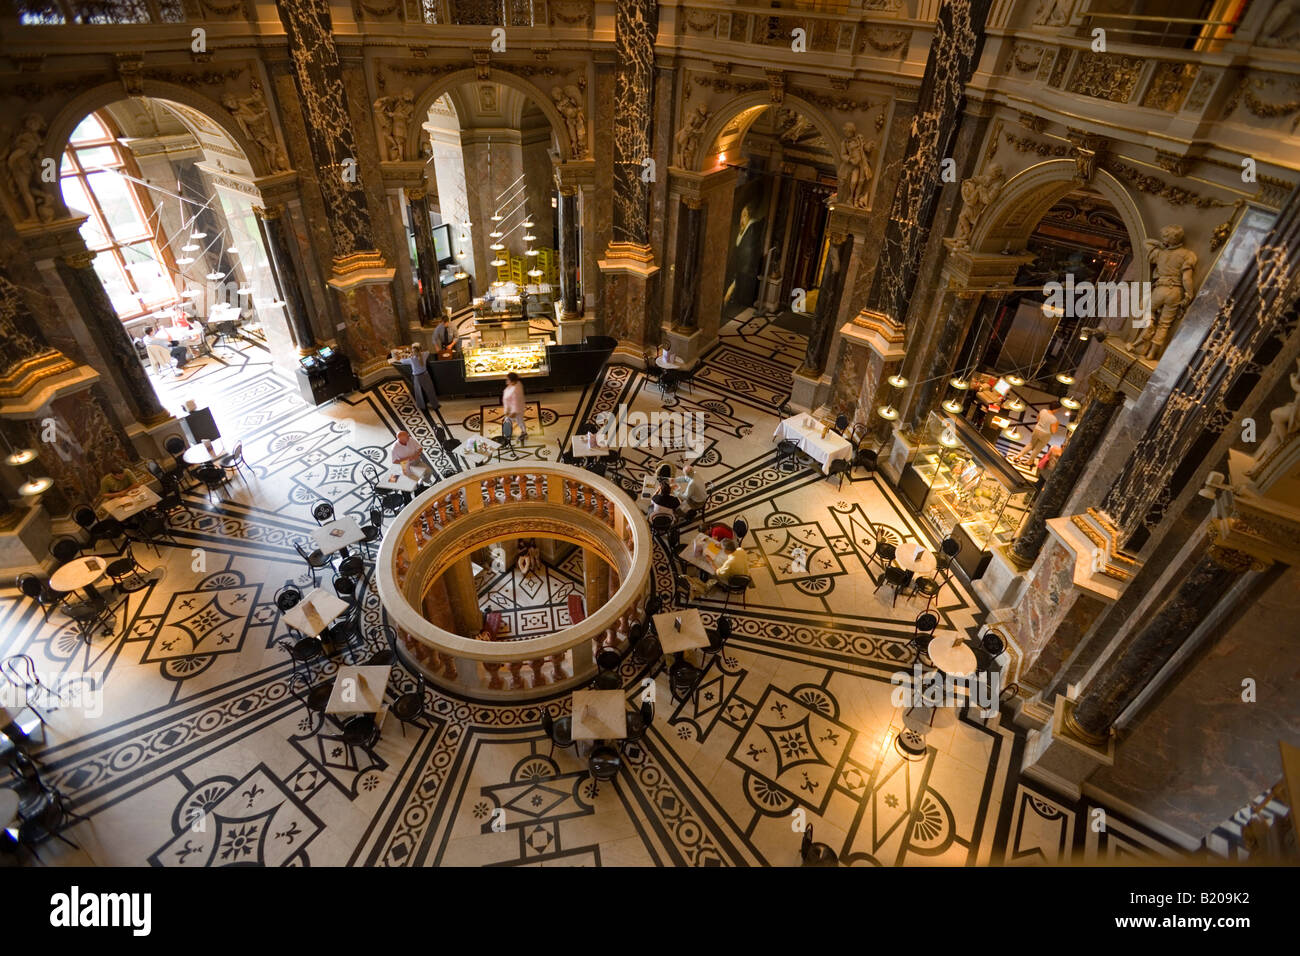 View inside a Cafe in the cupola hall of the Kunsthistorisches Museum Art Histroy Museum Vienna Austria Stock Photo